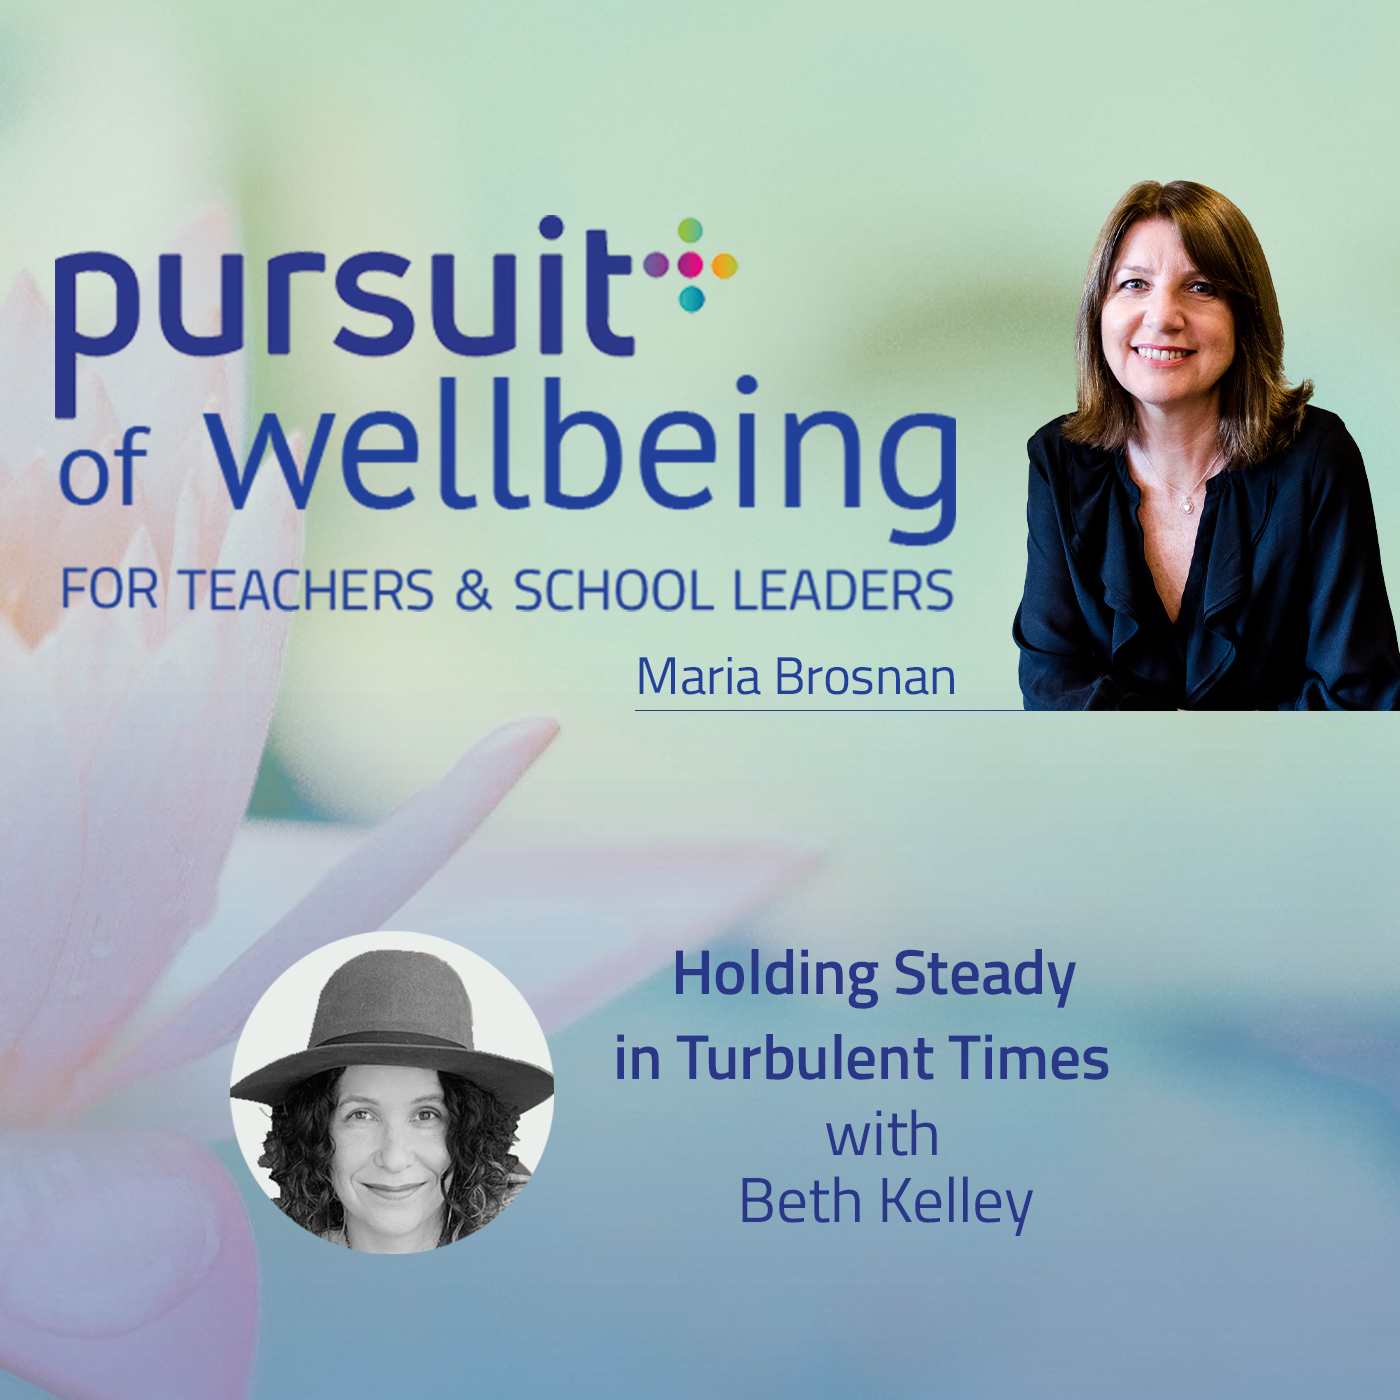 Holding Steady in Turbulent Times with Beth Kelley